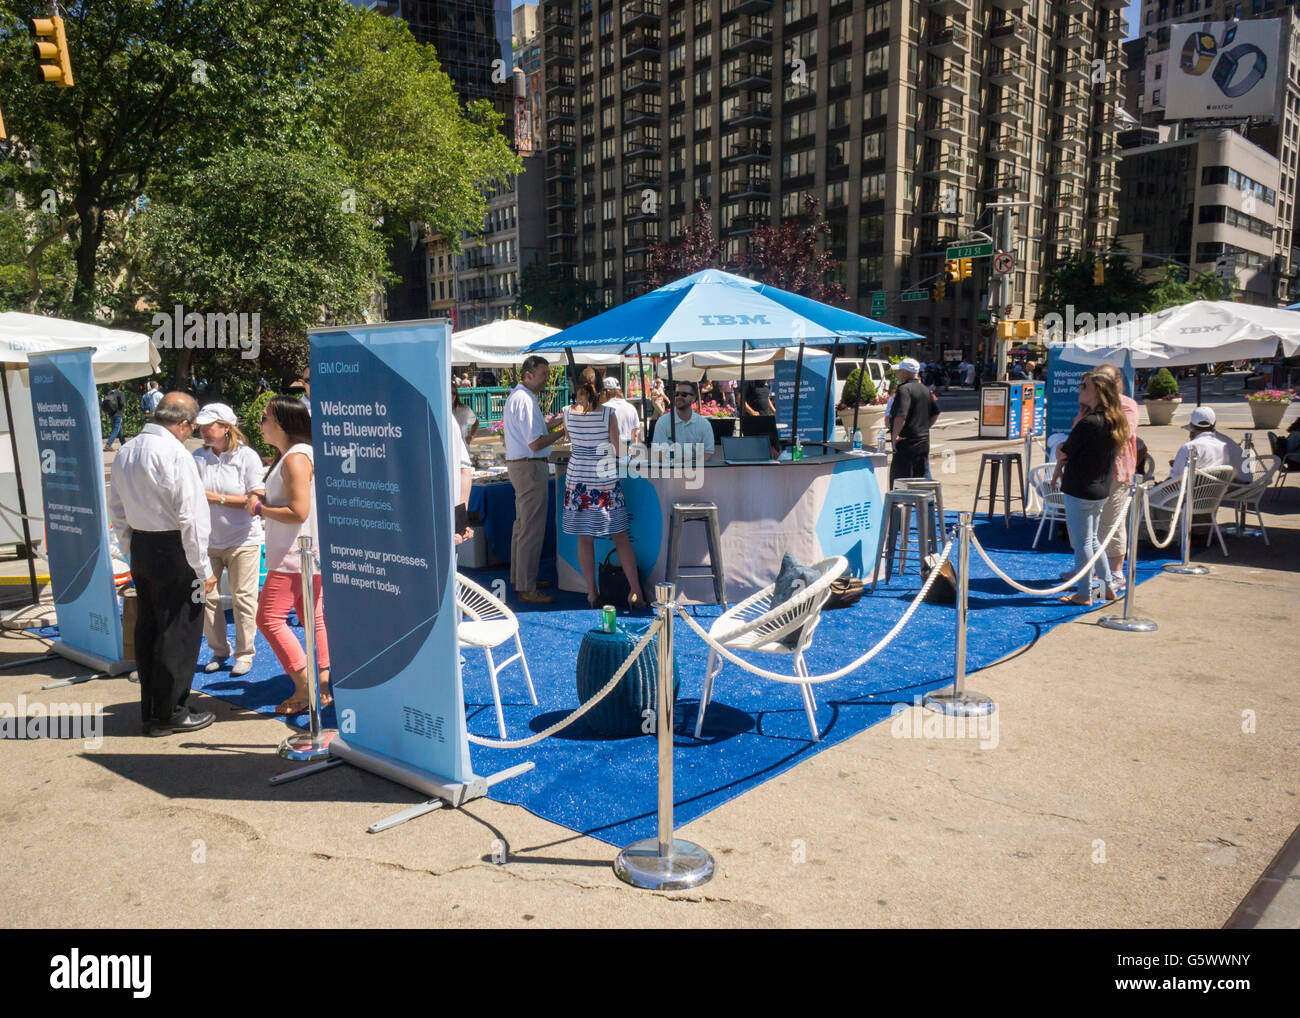 A promotional event for IBM Blueworks collaborative cloud-based business solution in Flatiron Plaza in New York - Stock Image